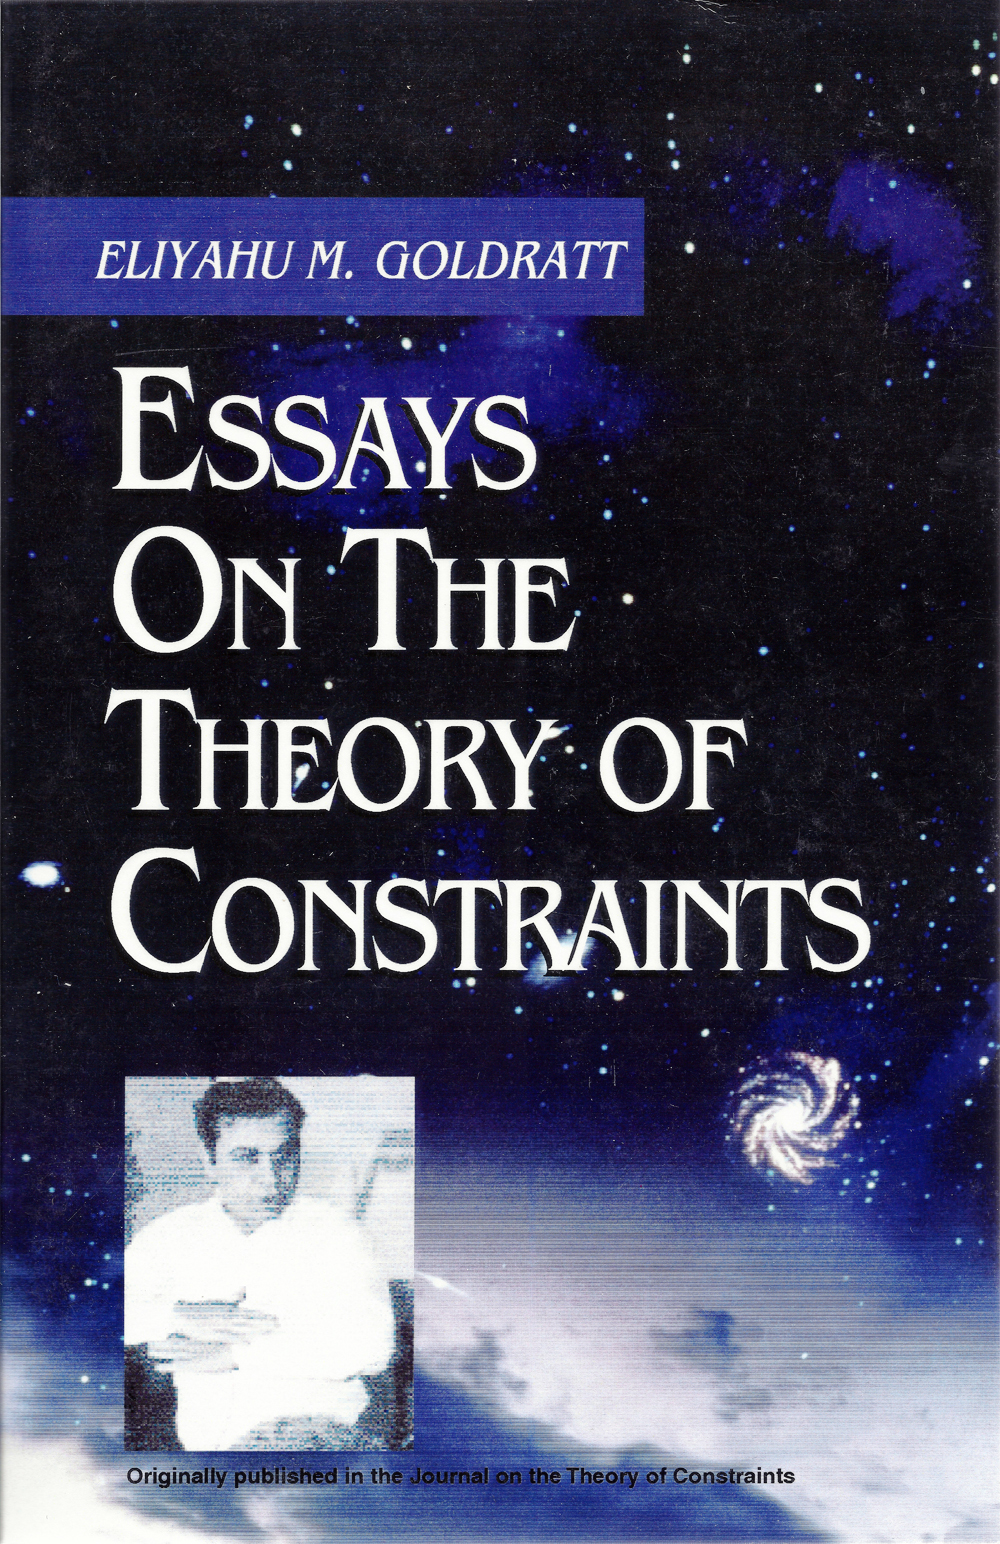 essay on theory of constraints Customphdthesiscom | we are world's leading student help focused on delivering quality term papers in timely manner, specially created according to student's.